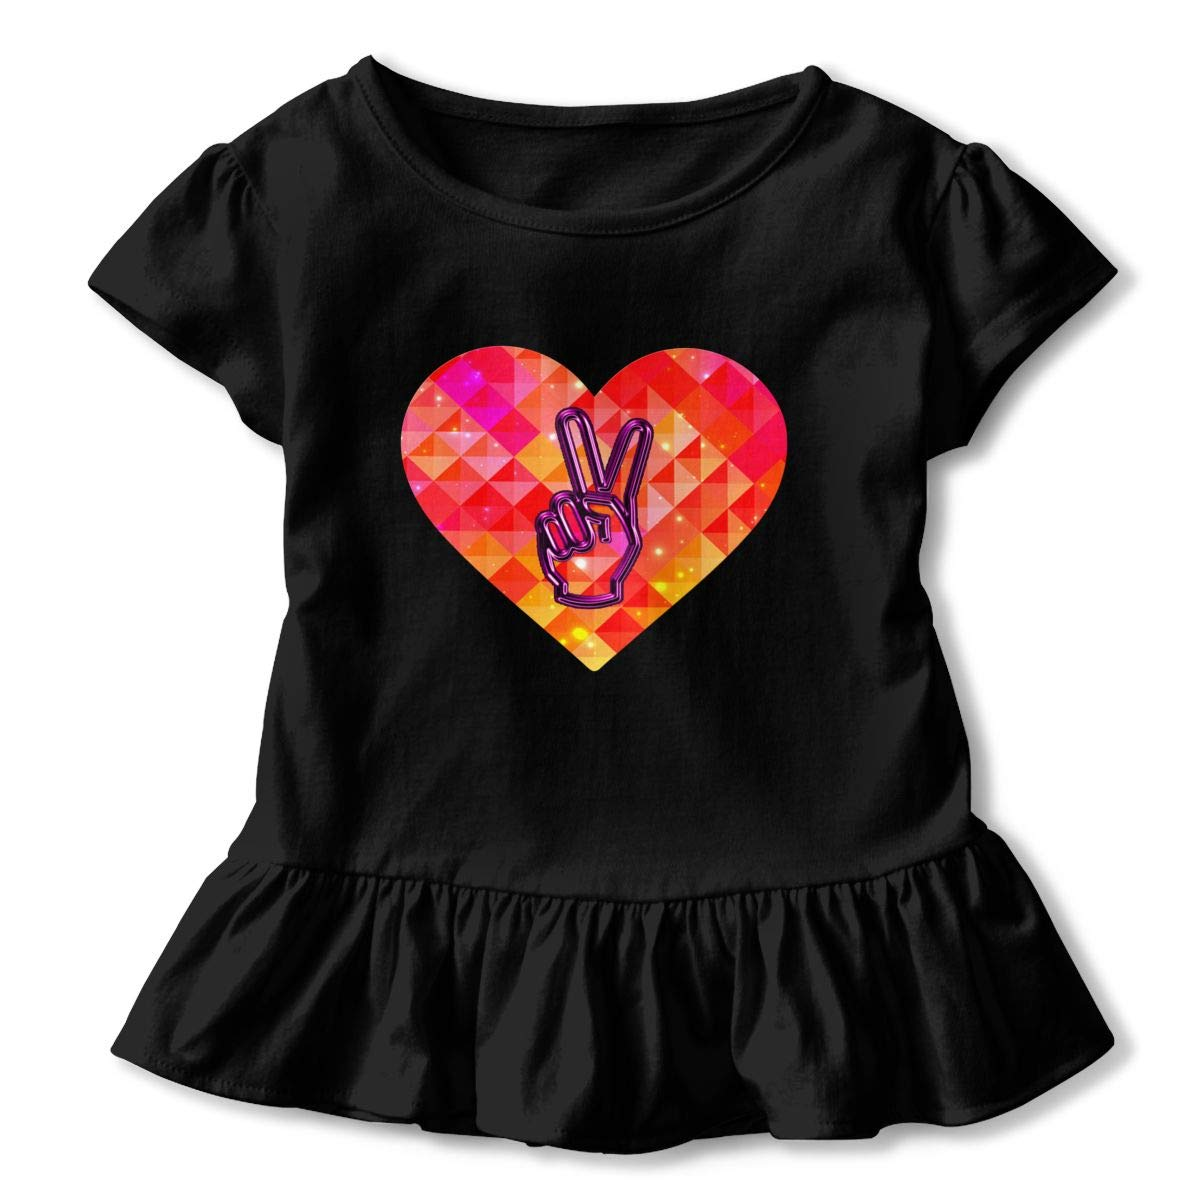 CZnuen Peace and Love Hand Peace Sign1 2-6T Baby Girls Cotton Jersey Short Sleeve Ruffle Tee